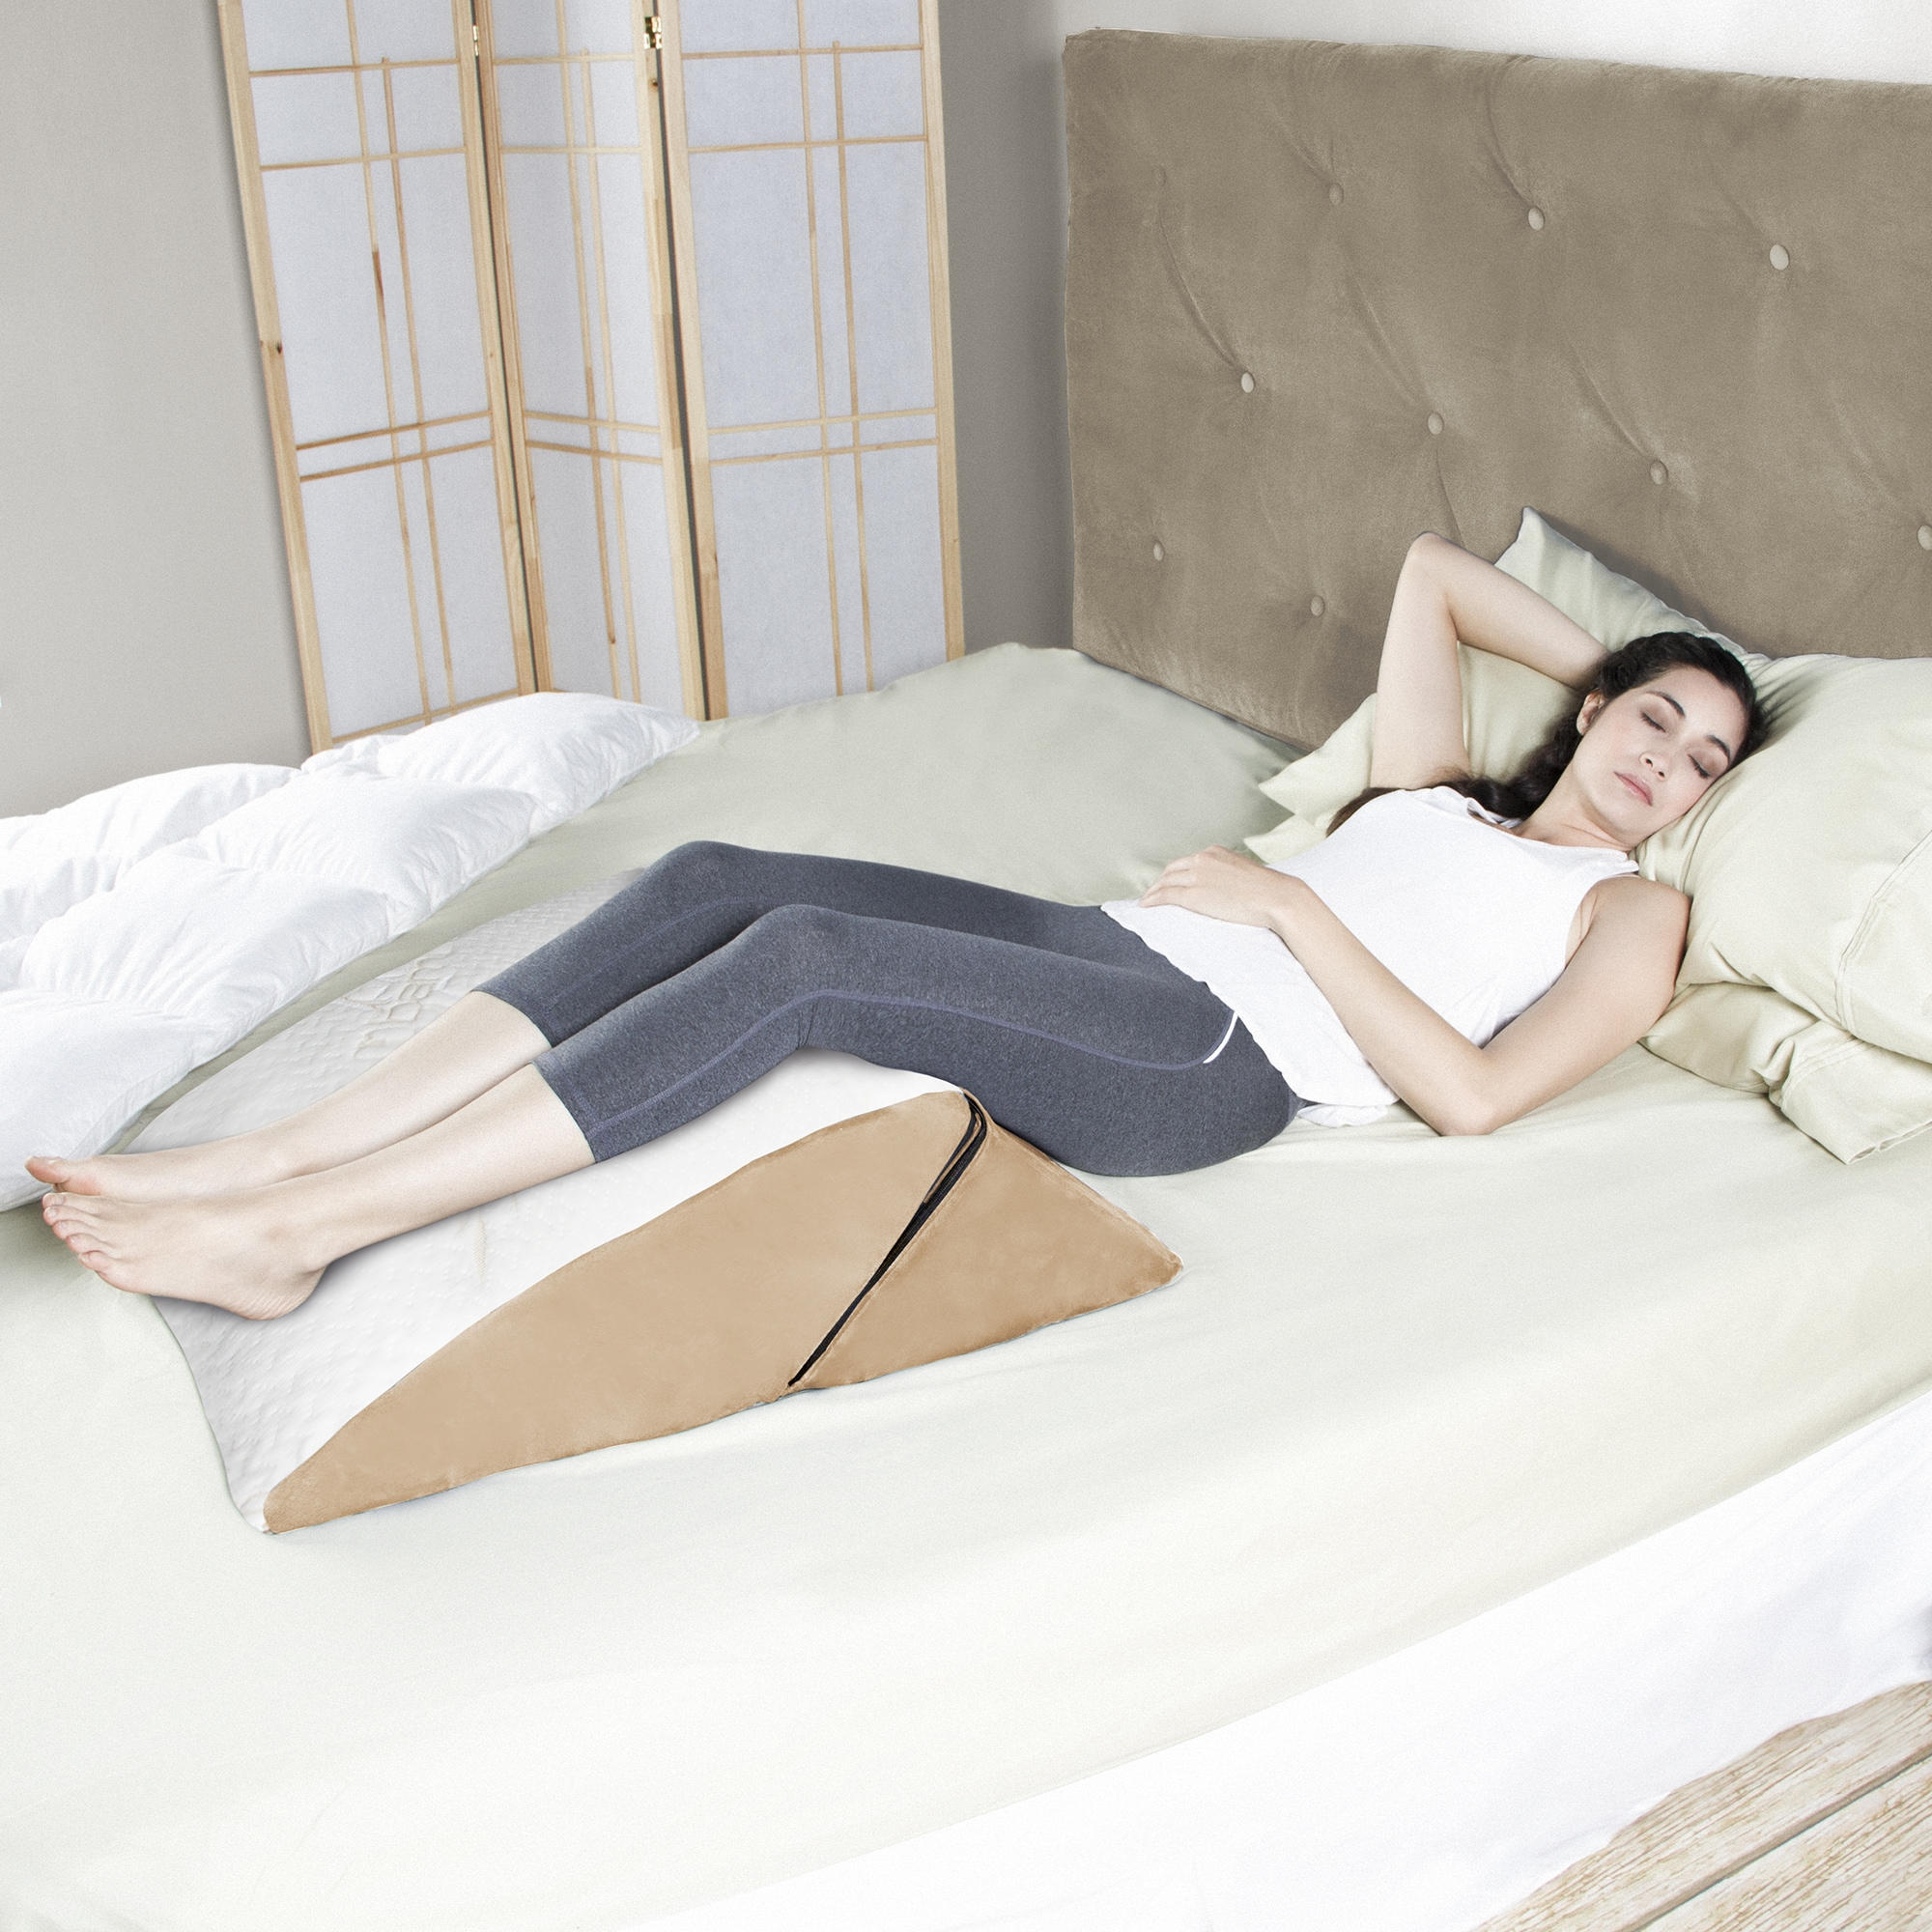 any position the in snuggle filled stomach contour wedge pillow flip with up multipurpose sleeping fiber lifestyle bed